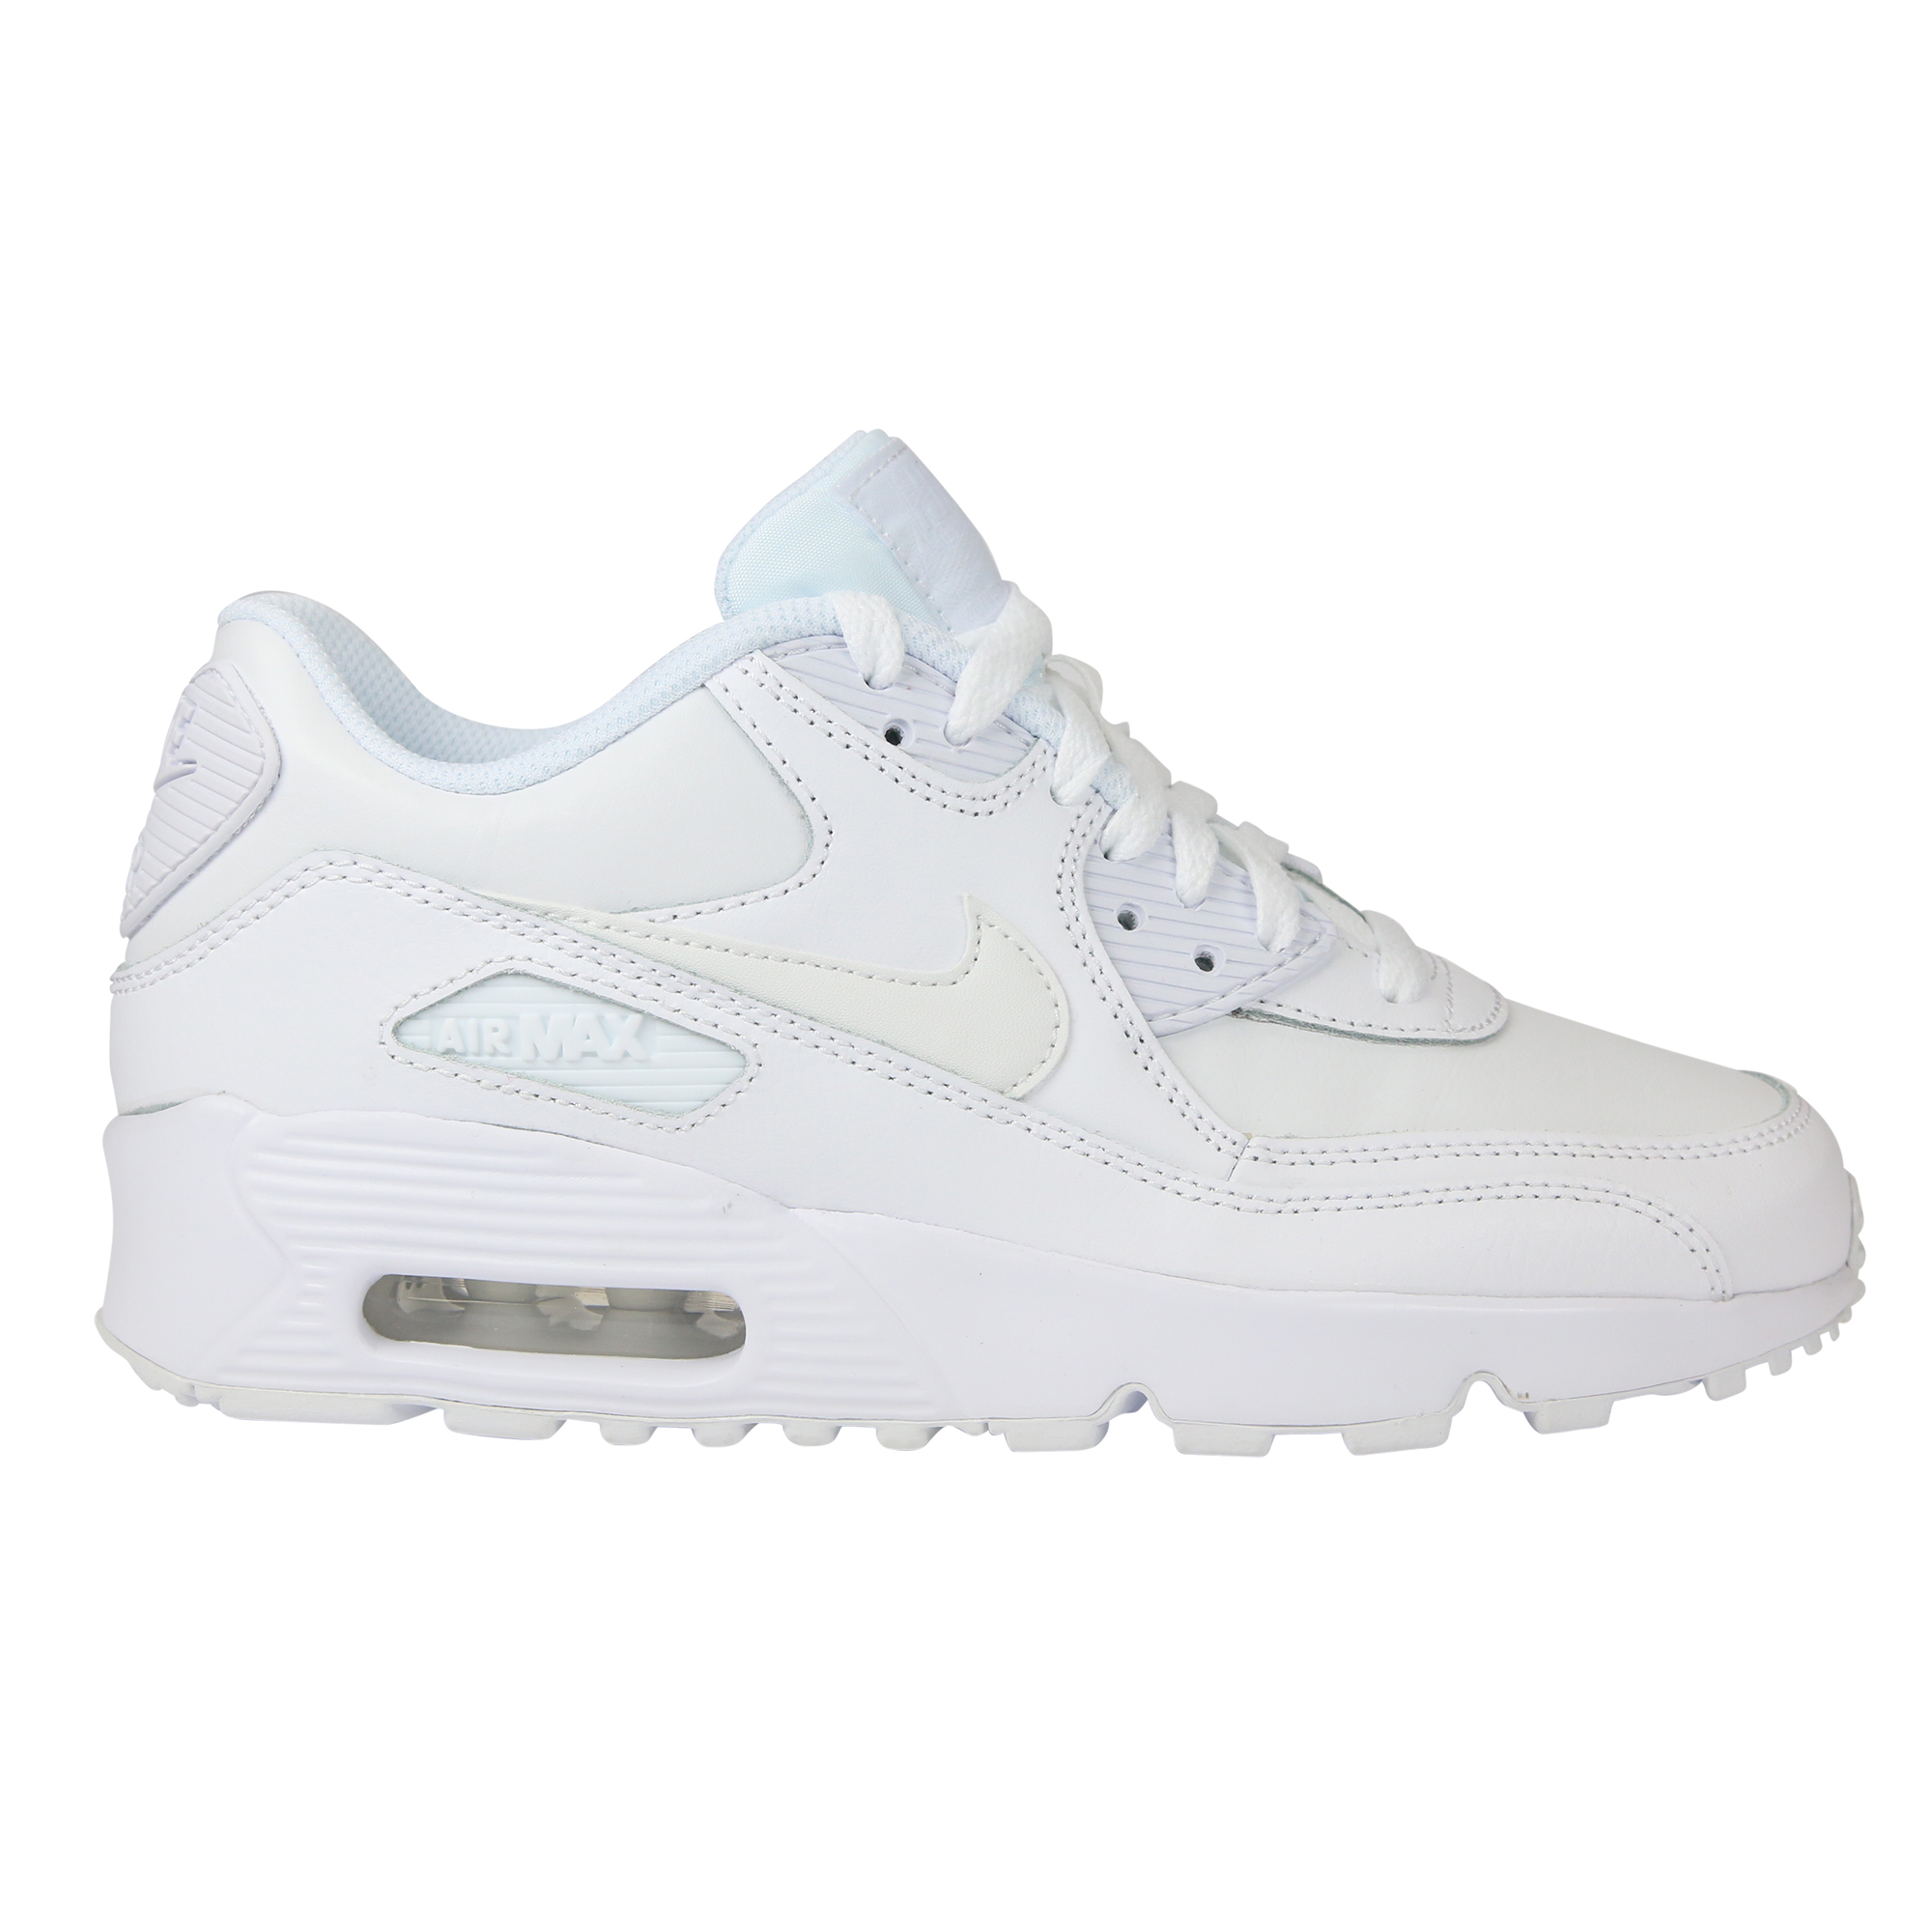 nike air max 90 leather gs schuhe turnschuhe sneaker. Black Bedroom Furniture Sets. Home Design Ideas